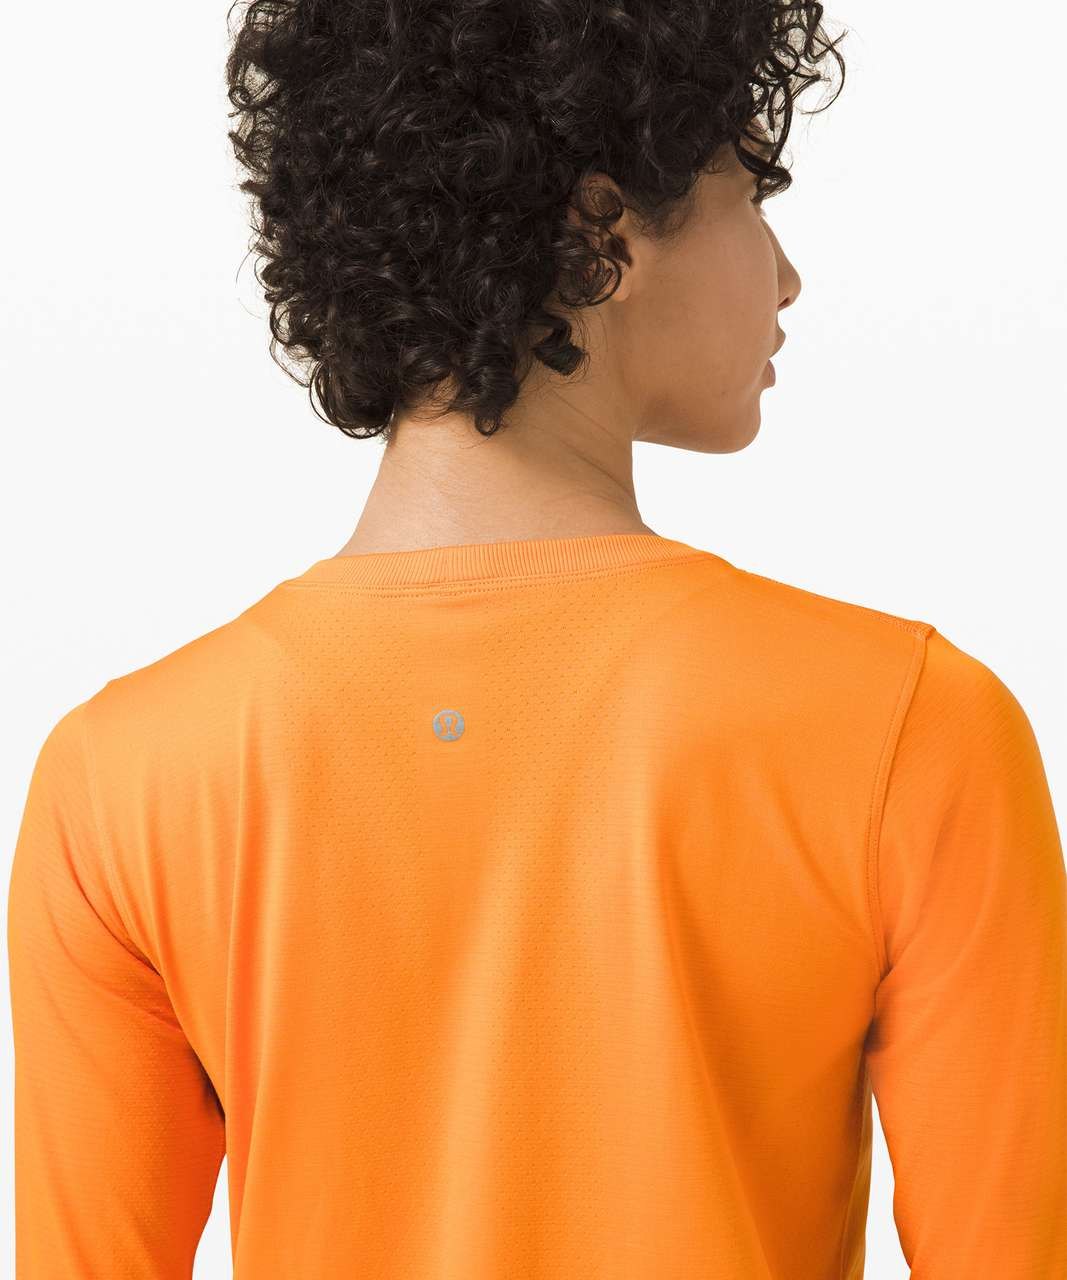 Lululemon Swiftly Relaxed Long Sleeve 2.0 - Tiger / Tiger